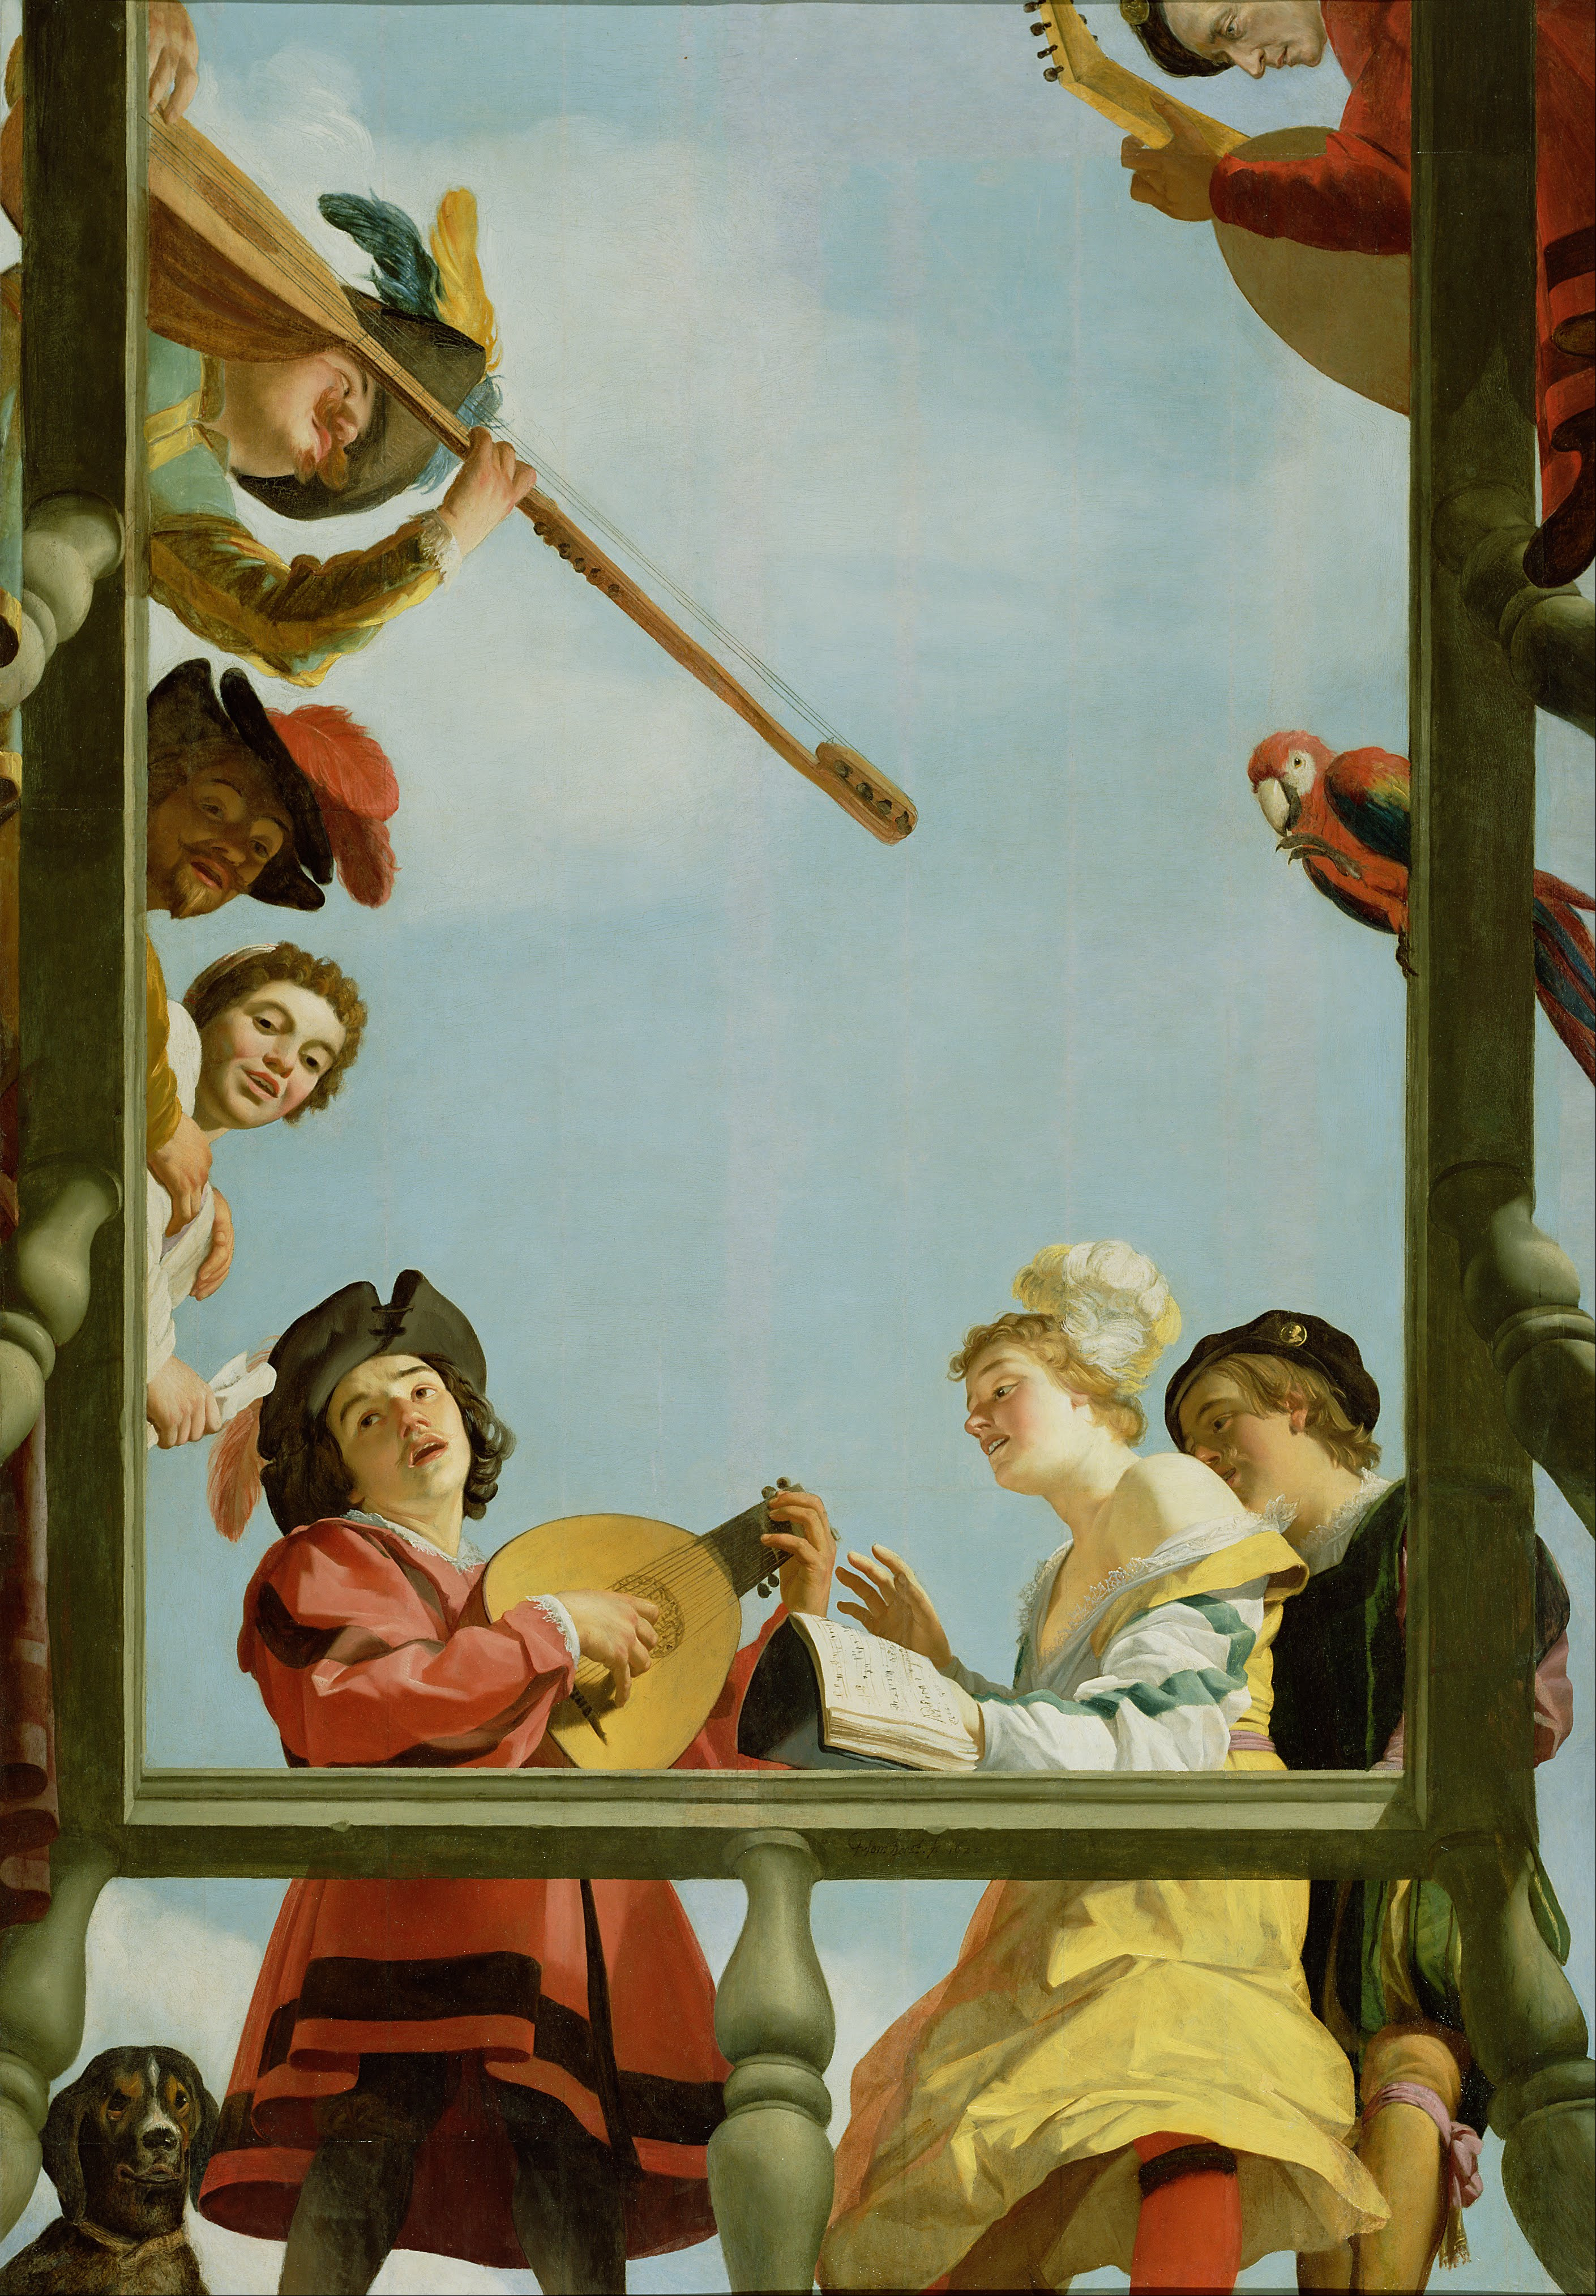 Best depictions of music in paintings: Gerard von Honthorst, Musical Group on a Balcony, ca. 1622. Getty Center, Los Angeles, CA, USA.